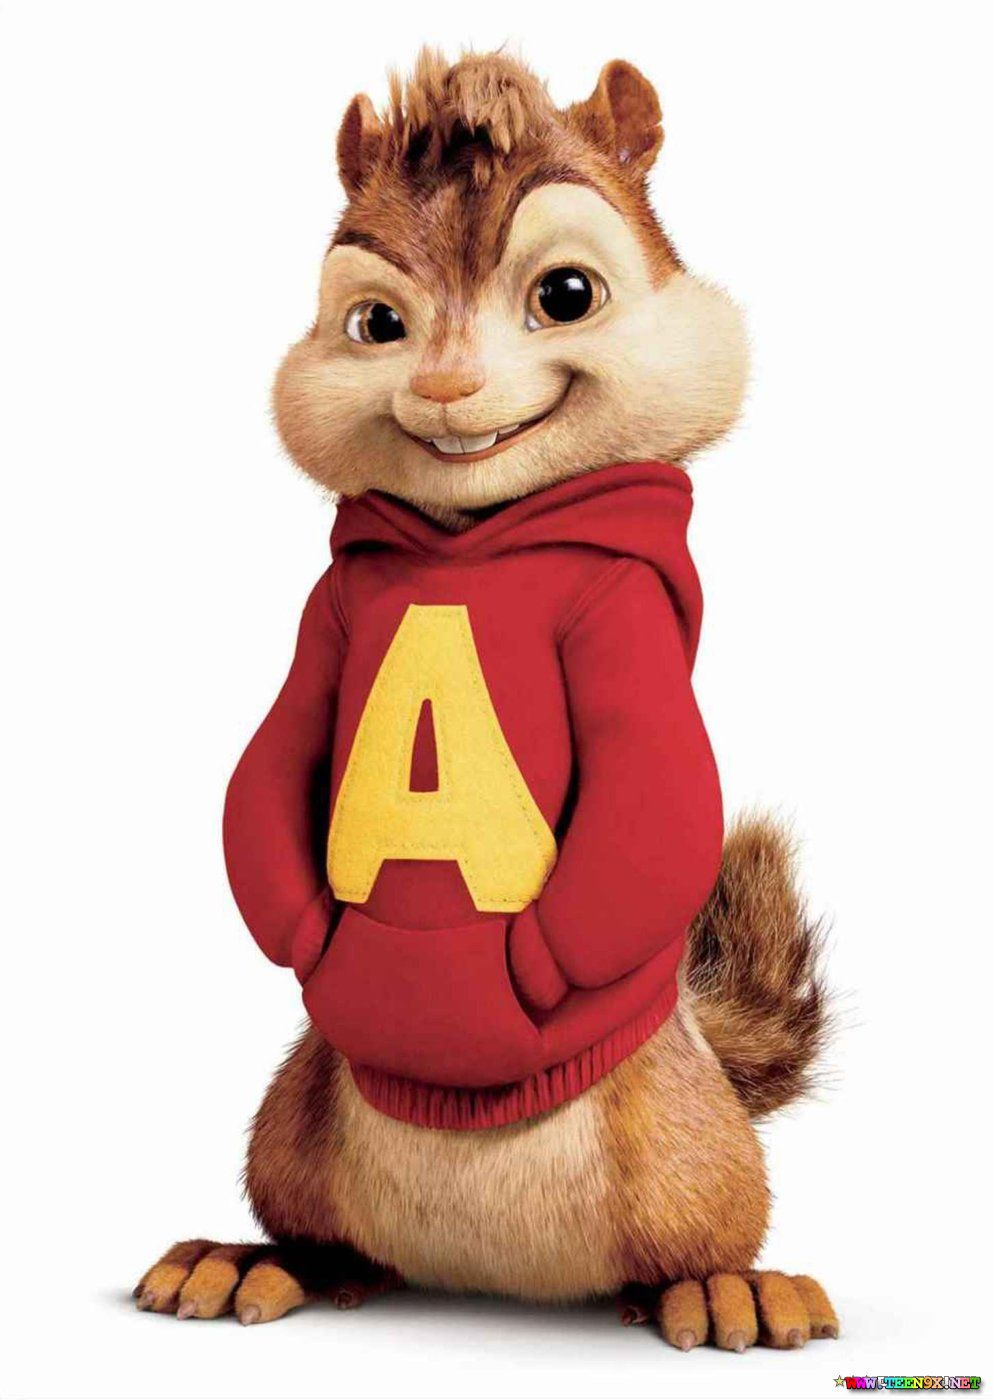 Alvin and the Chipmunks - Wikipedia